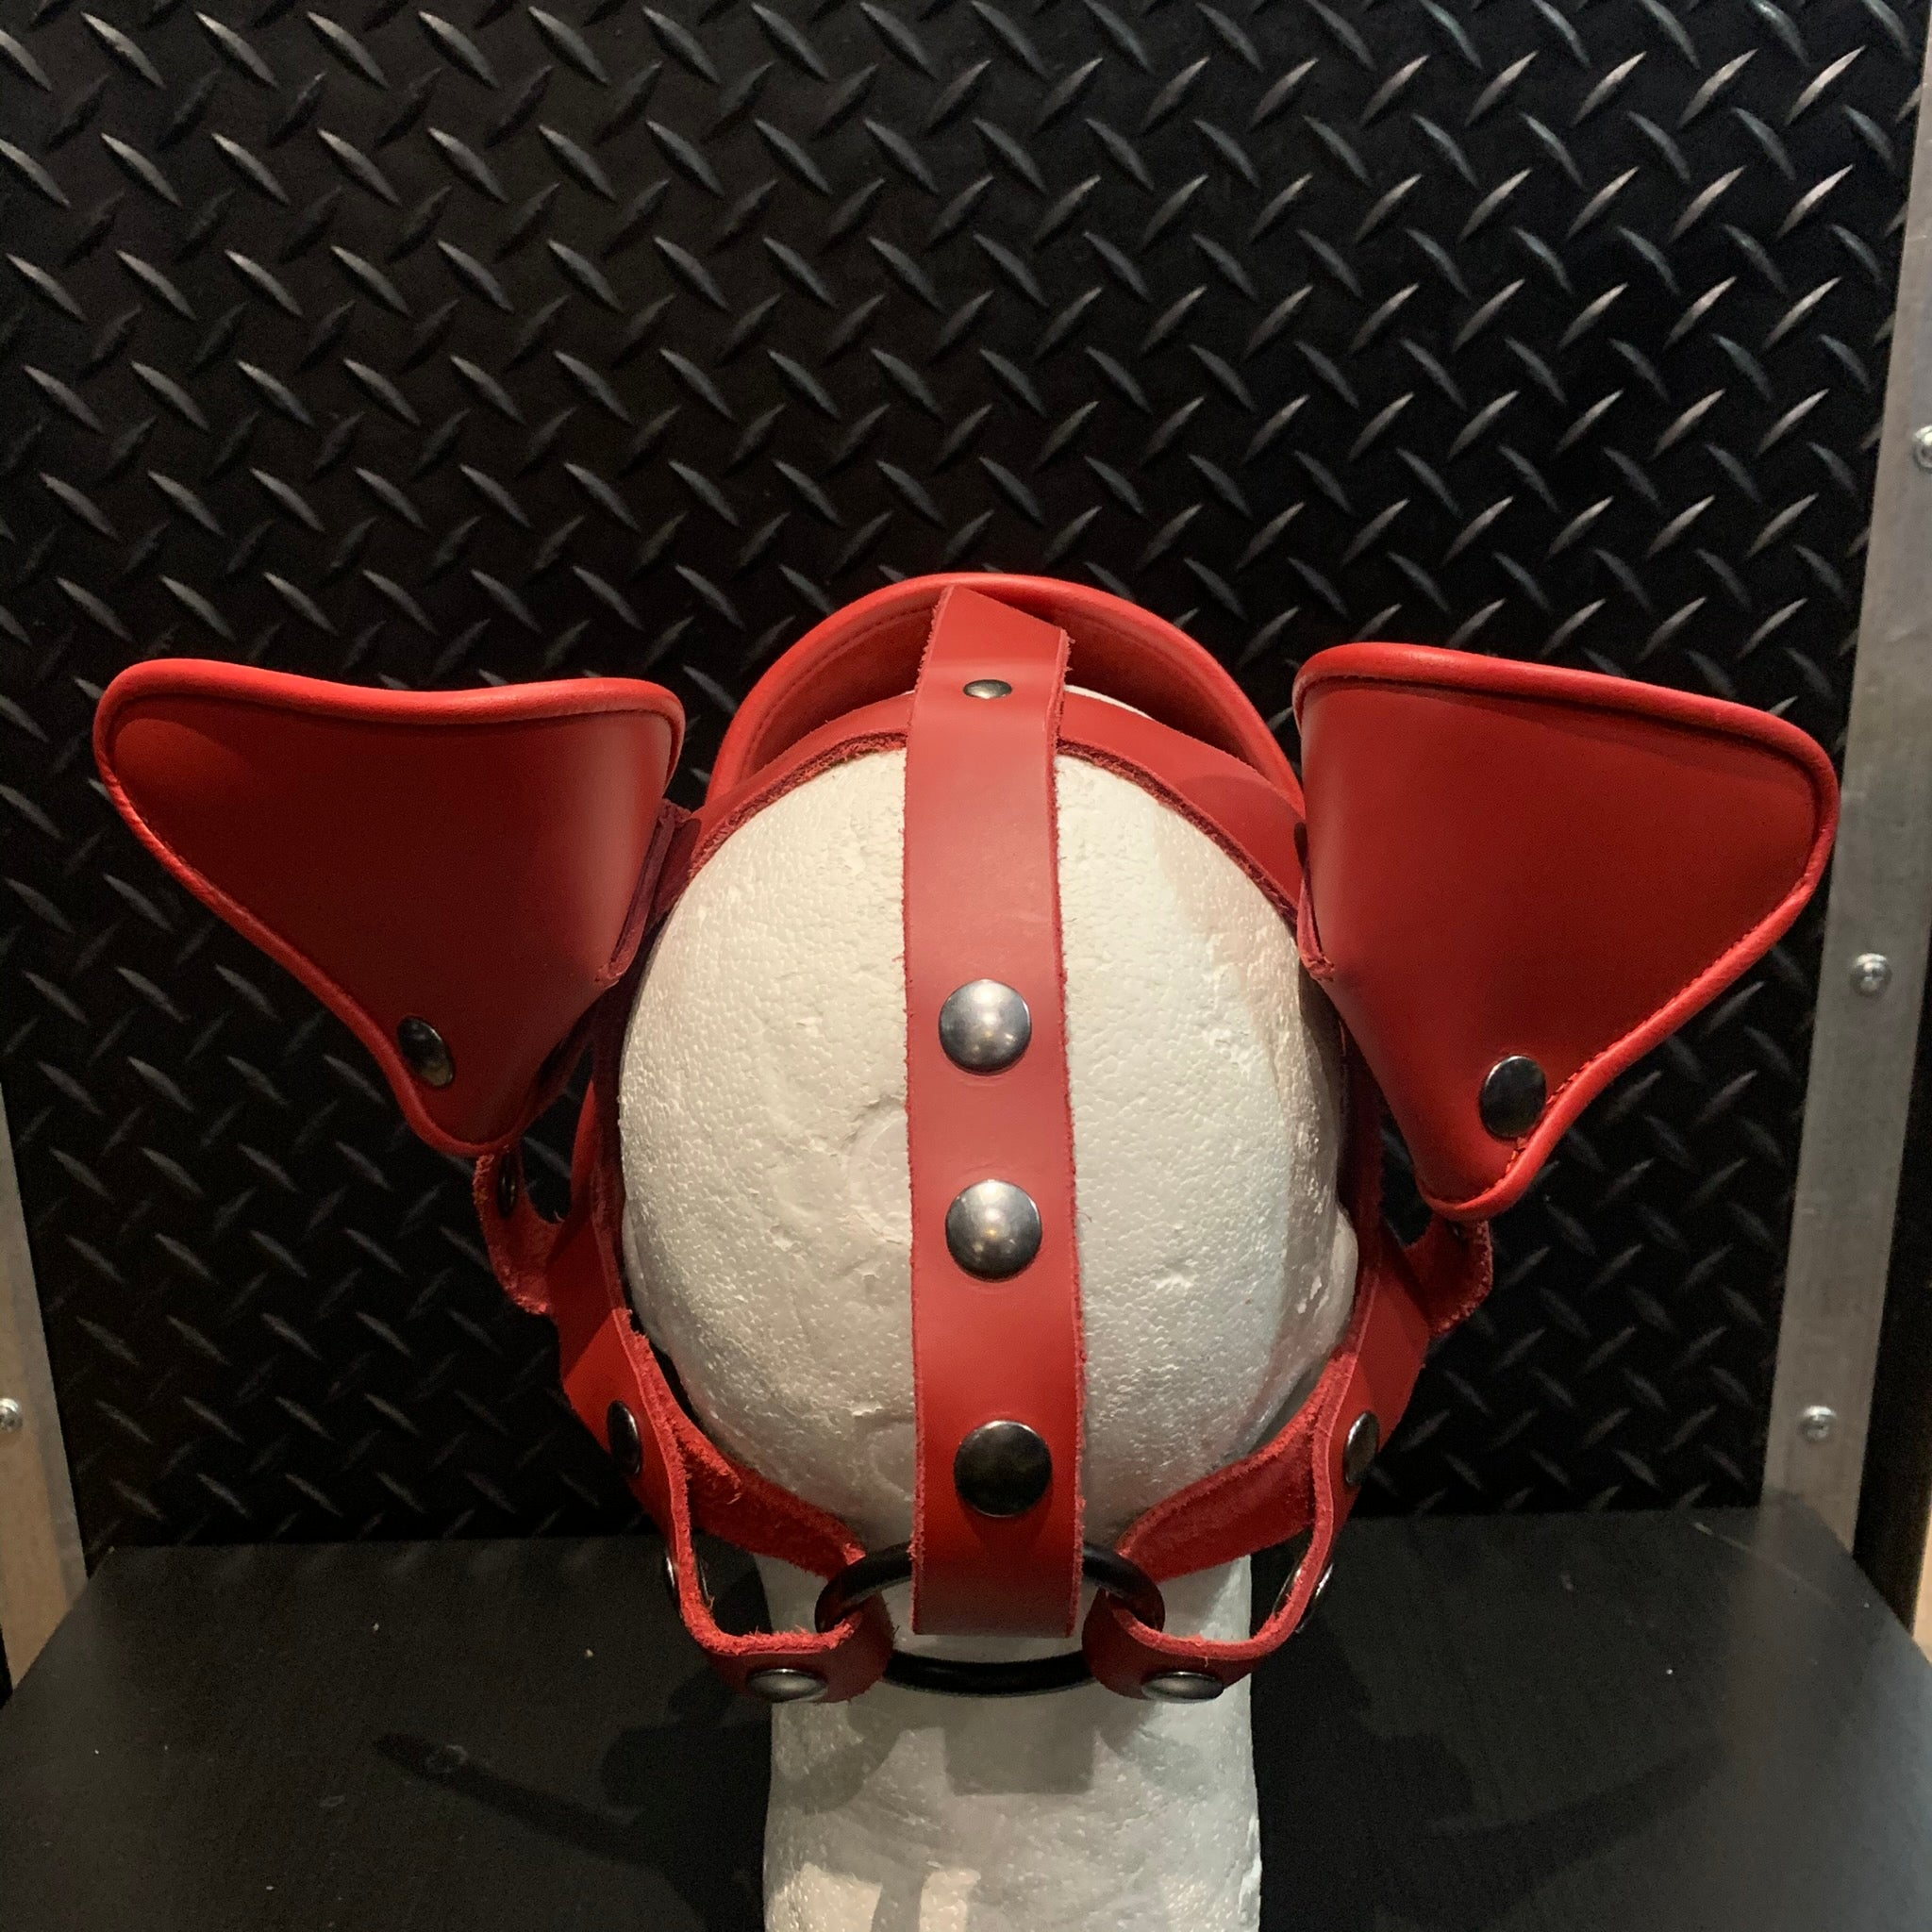 P&C CREATIONS PUP HOOD-DELUXE PUP HOOD RED